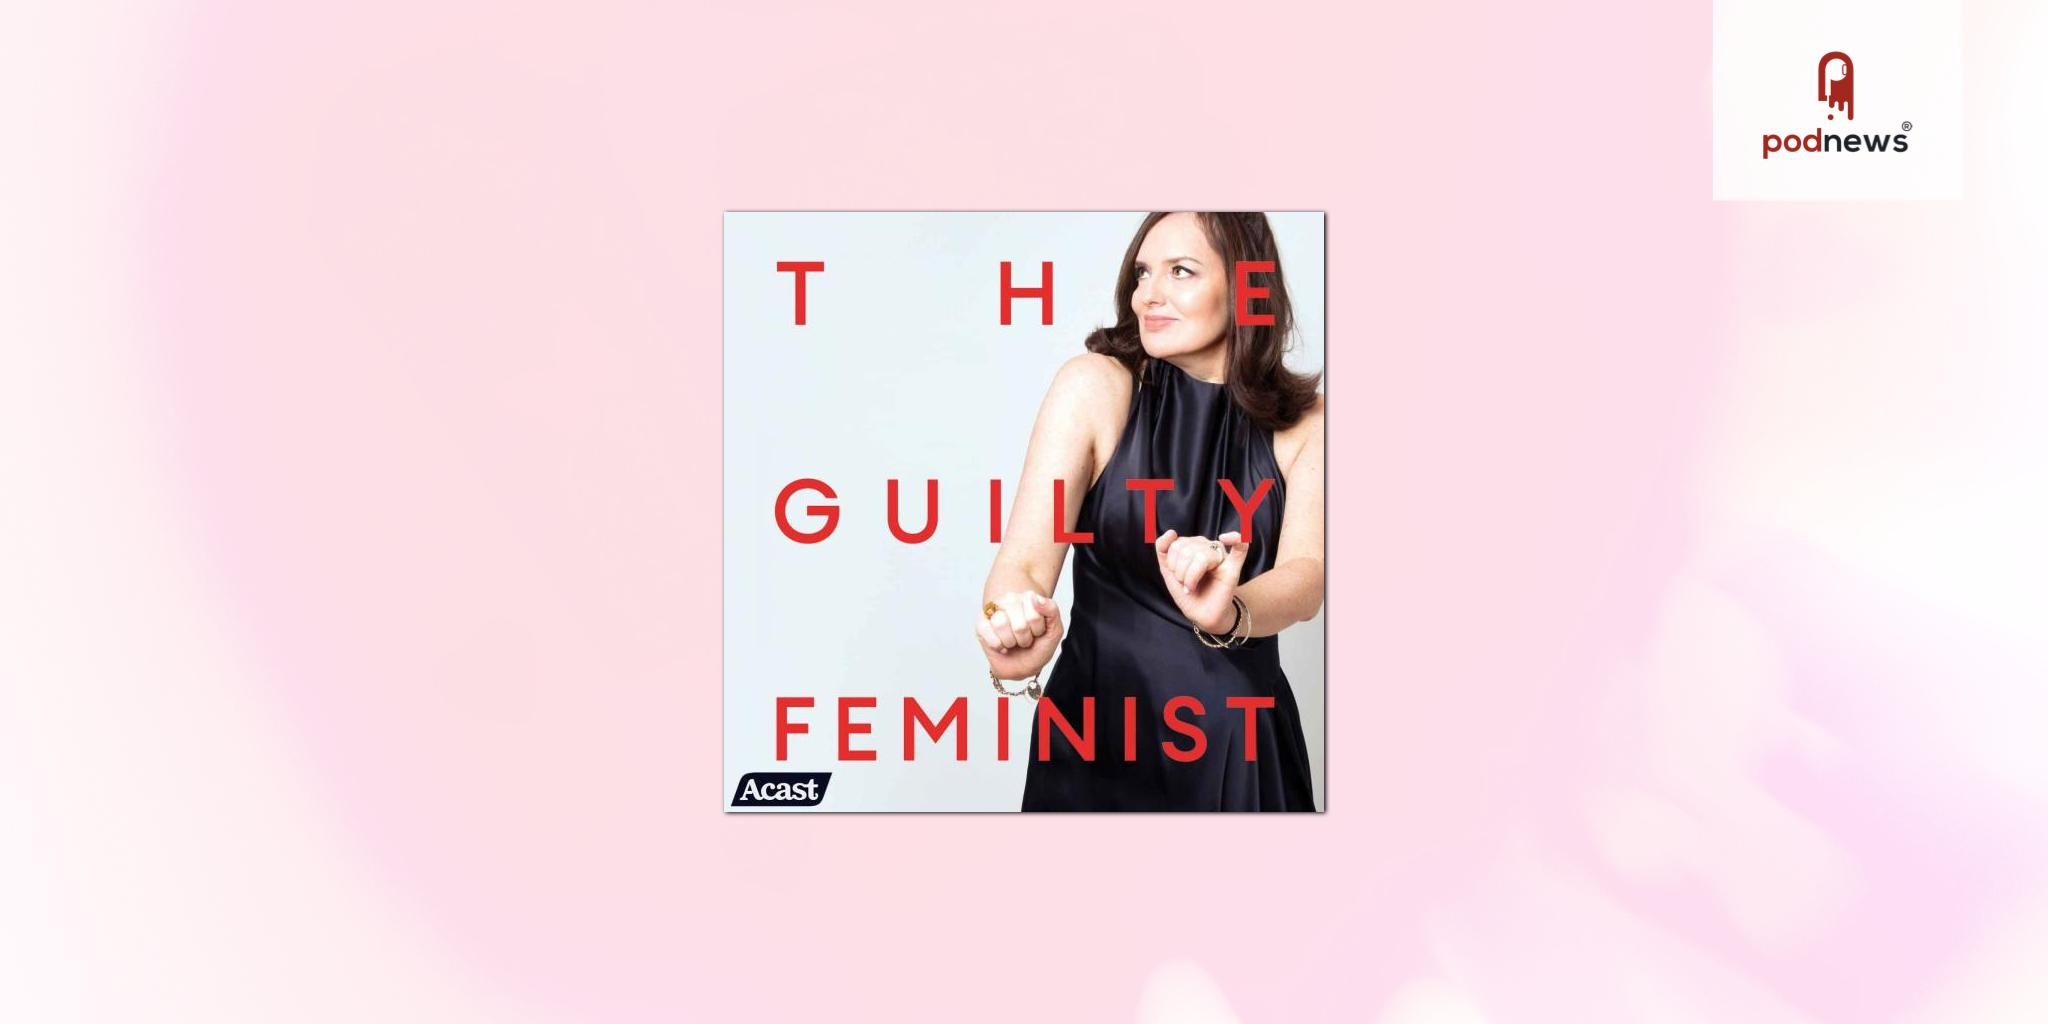 The Guilty Feminist joins the Acast Creator Network